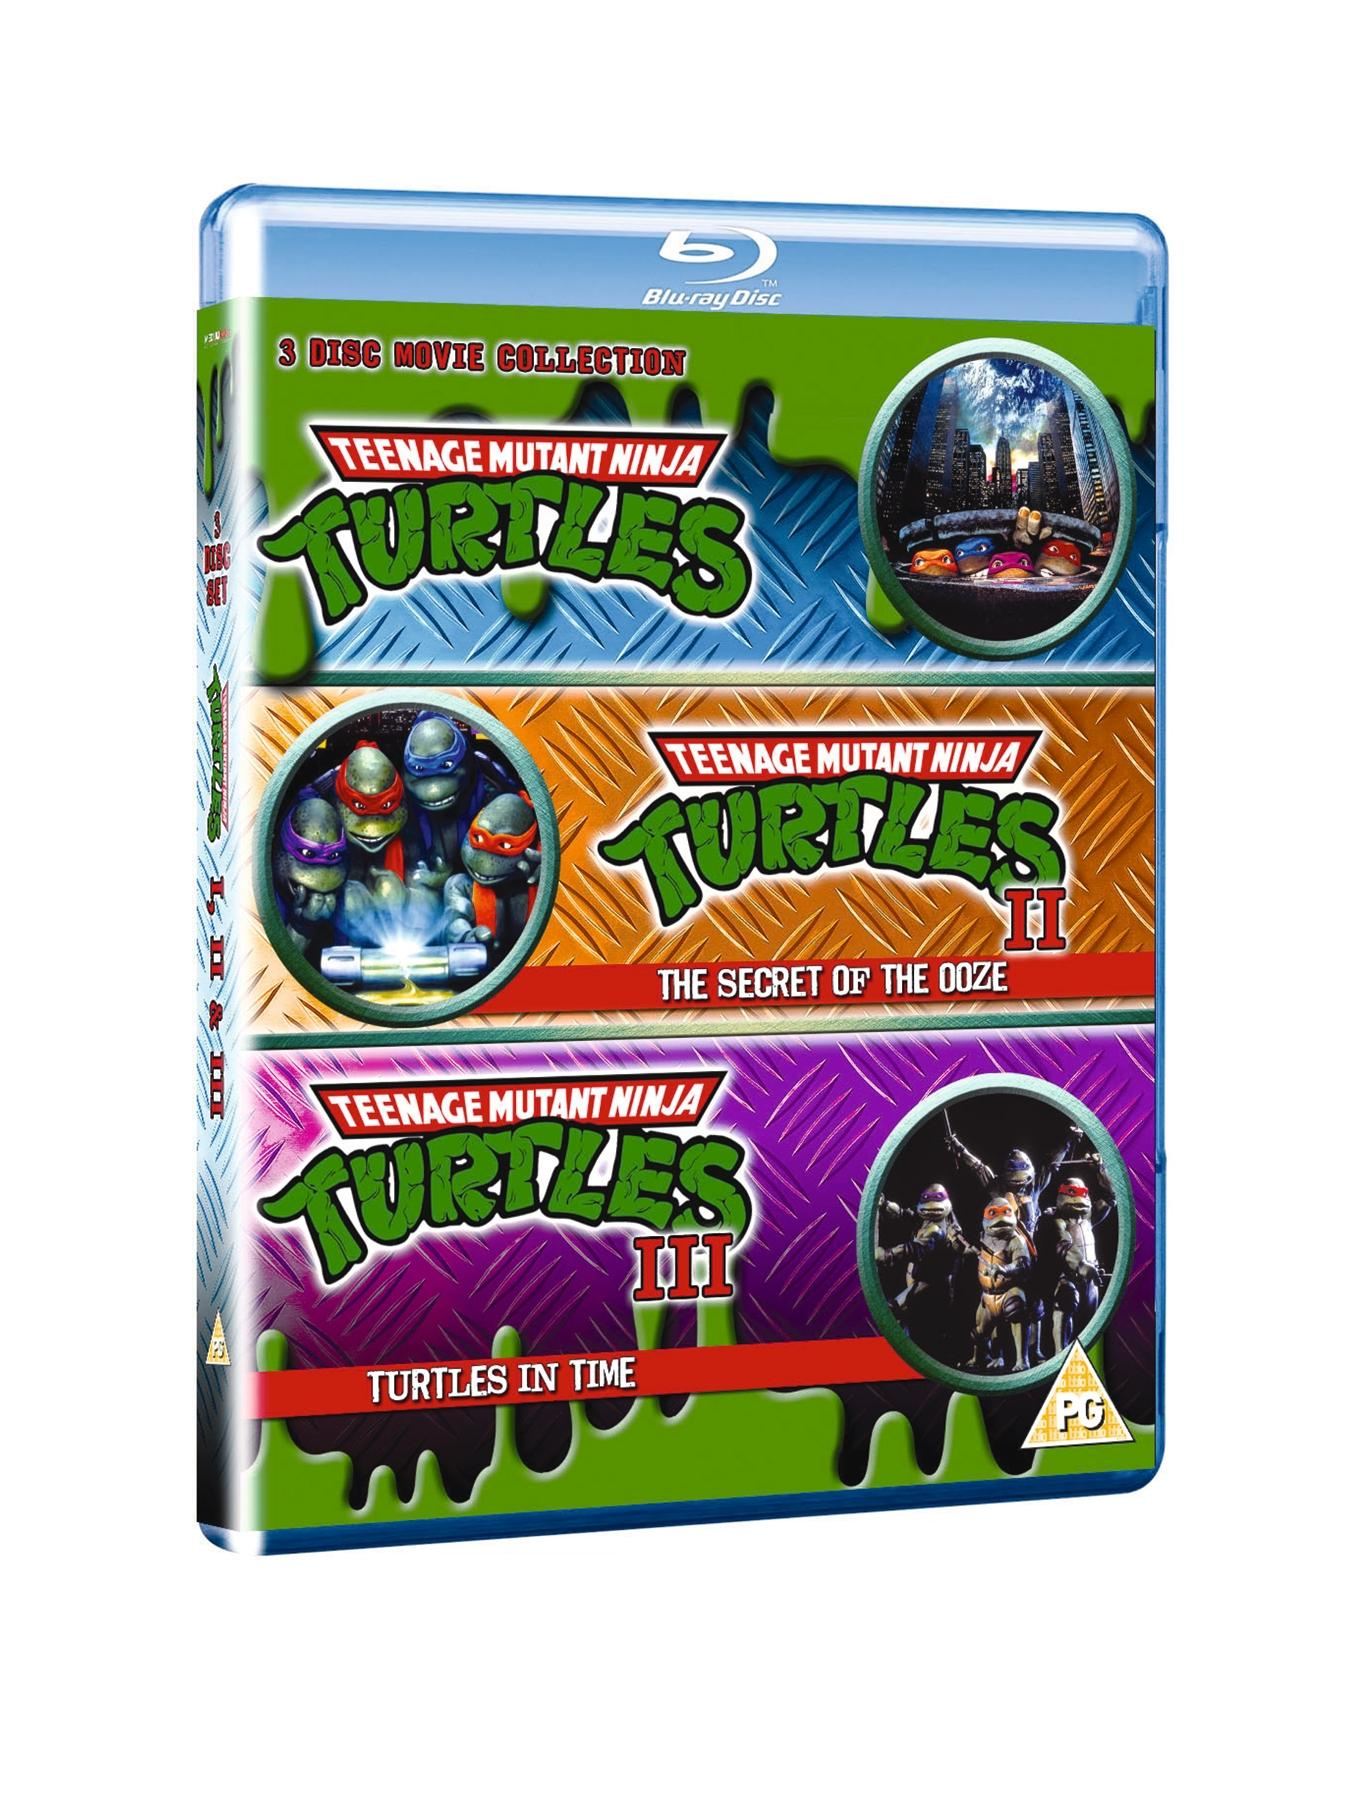 Teenage Mutant Ninja Turtles - The Movie Collection Blu-ray